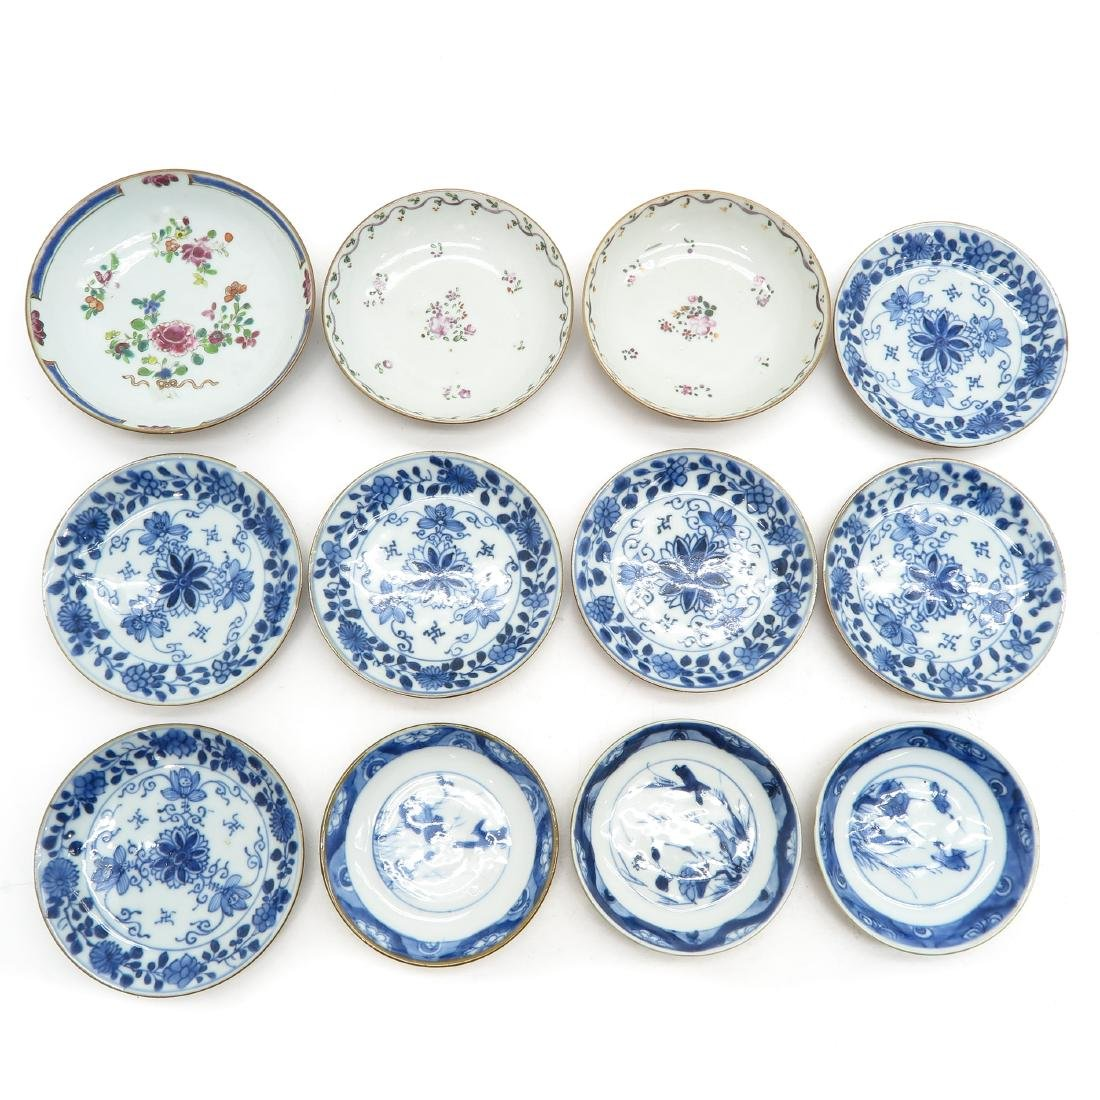 Lot of 12 Small Plates